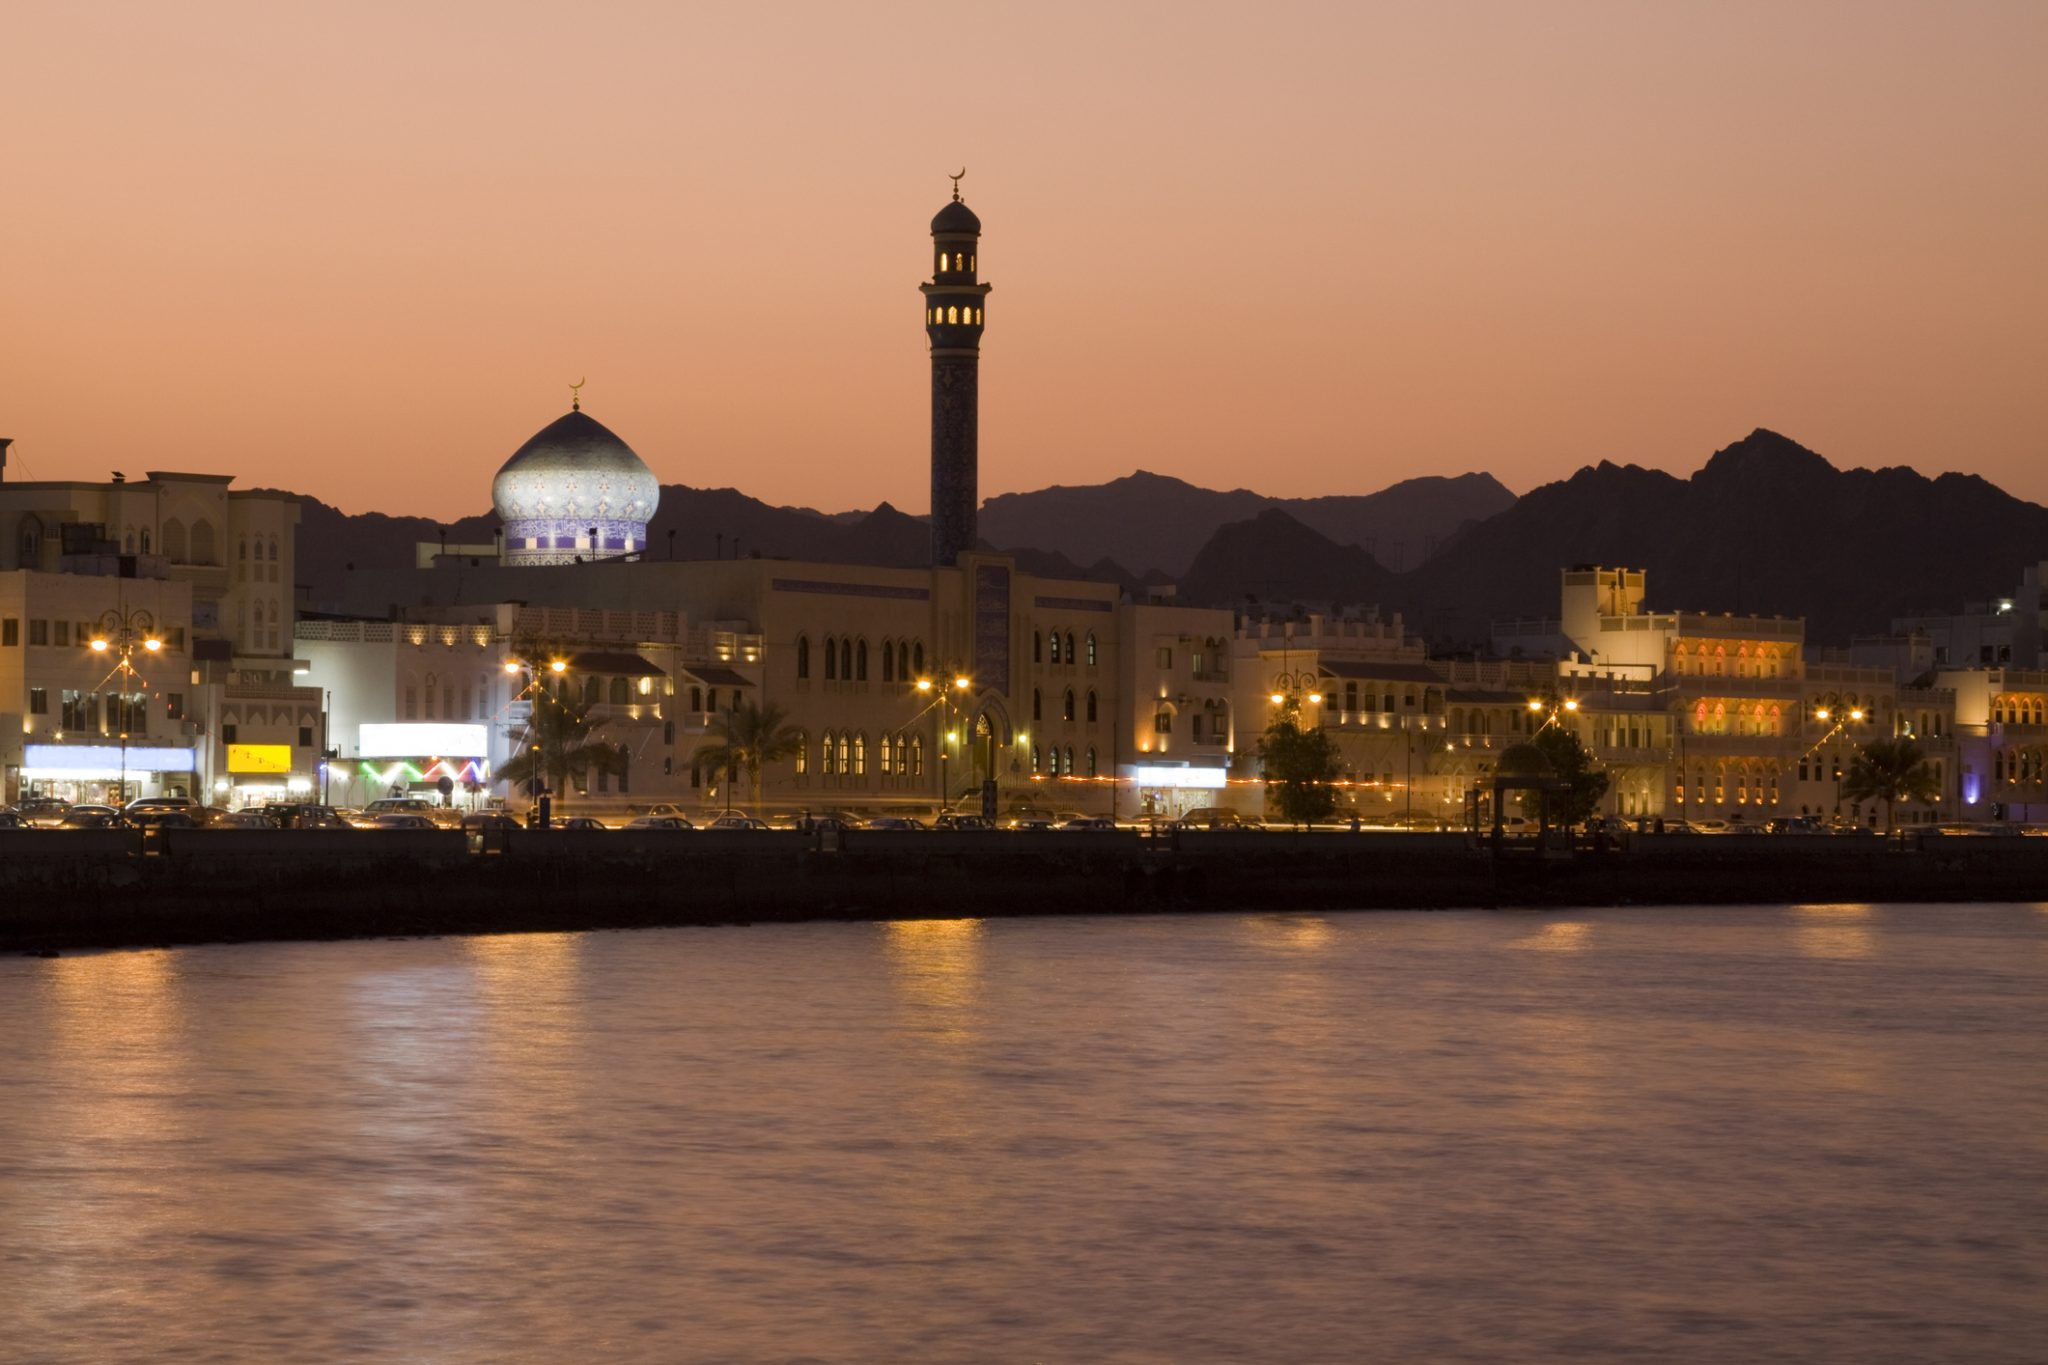 Sunset in Muscat, Oman.